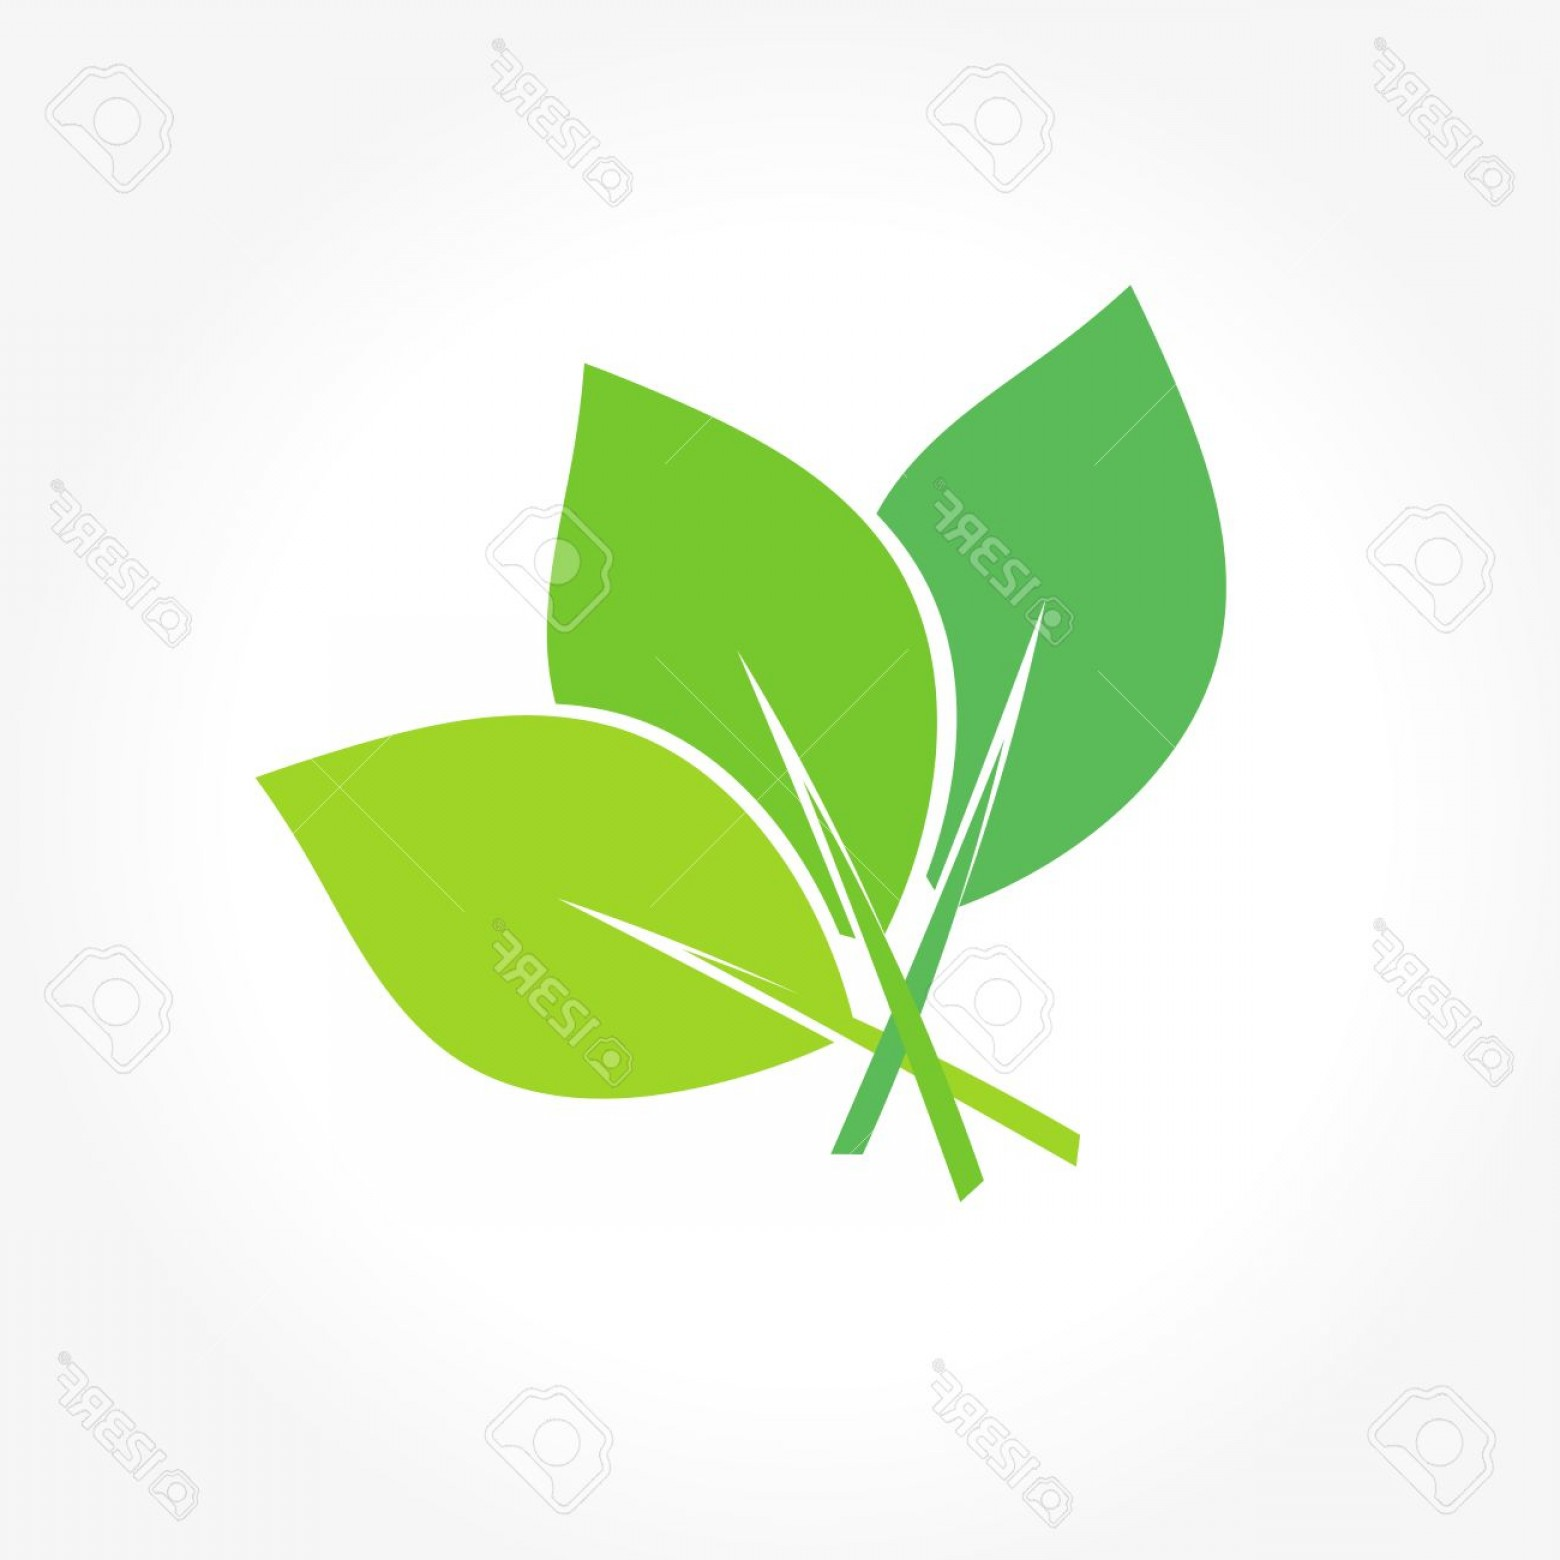 Vector Leaf Graphicd: Photostock Vector Leaves Icon Leaf Symbol Flat Leaf Icon Leaves Illustration Green Leaf Vector Graphic Leaves Leaf Vec